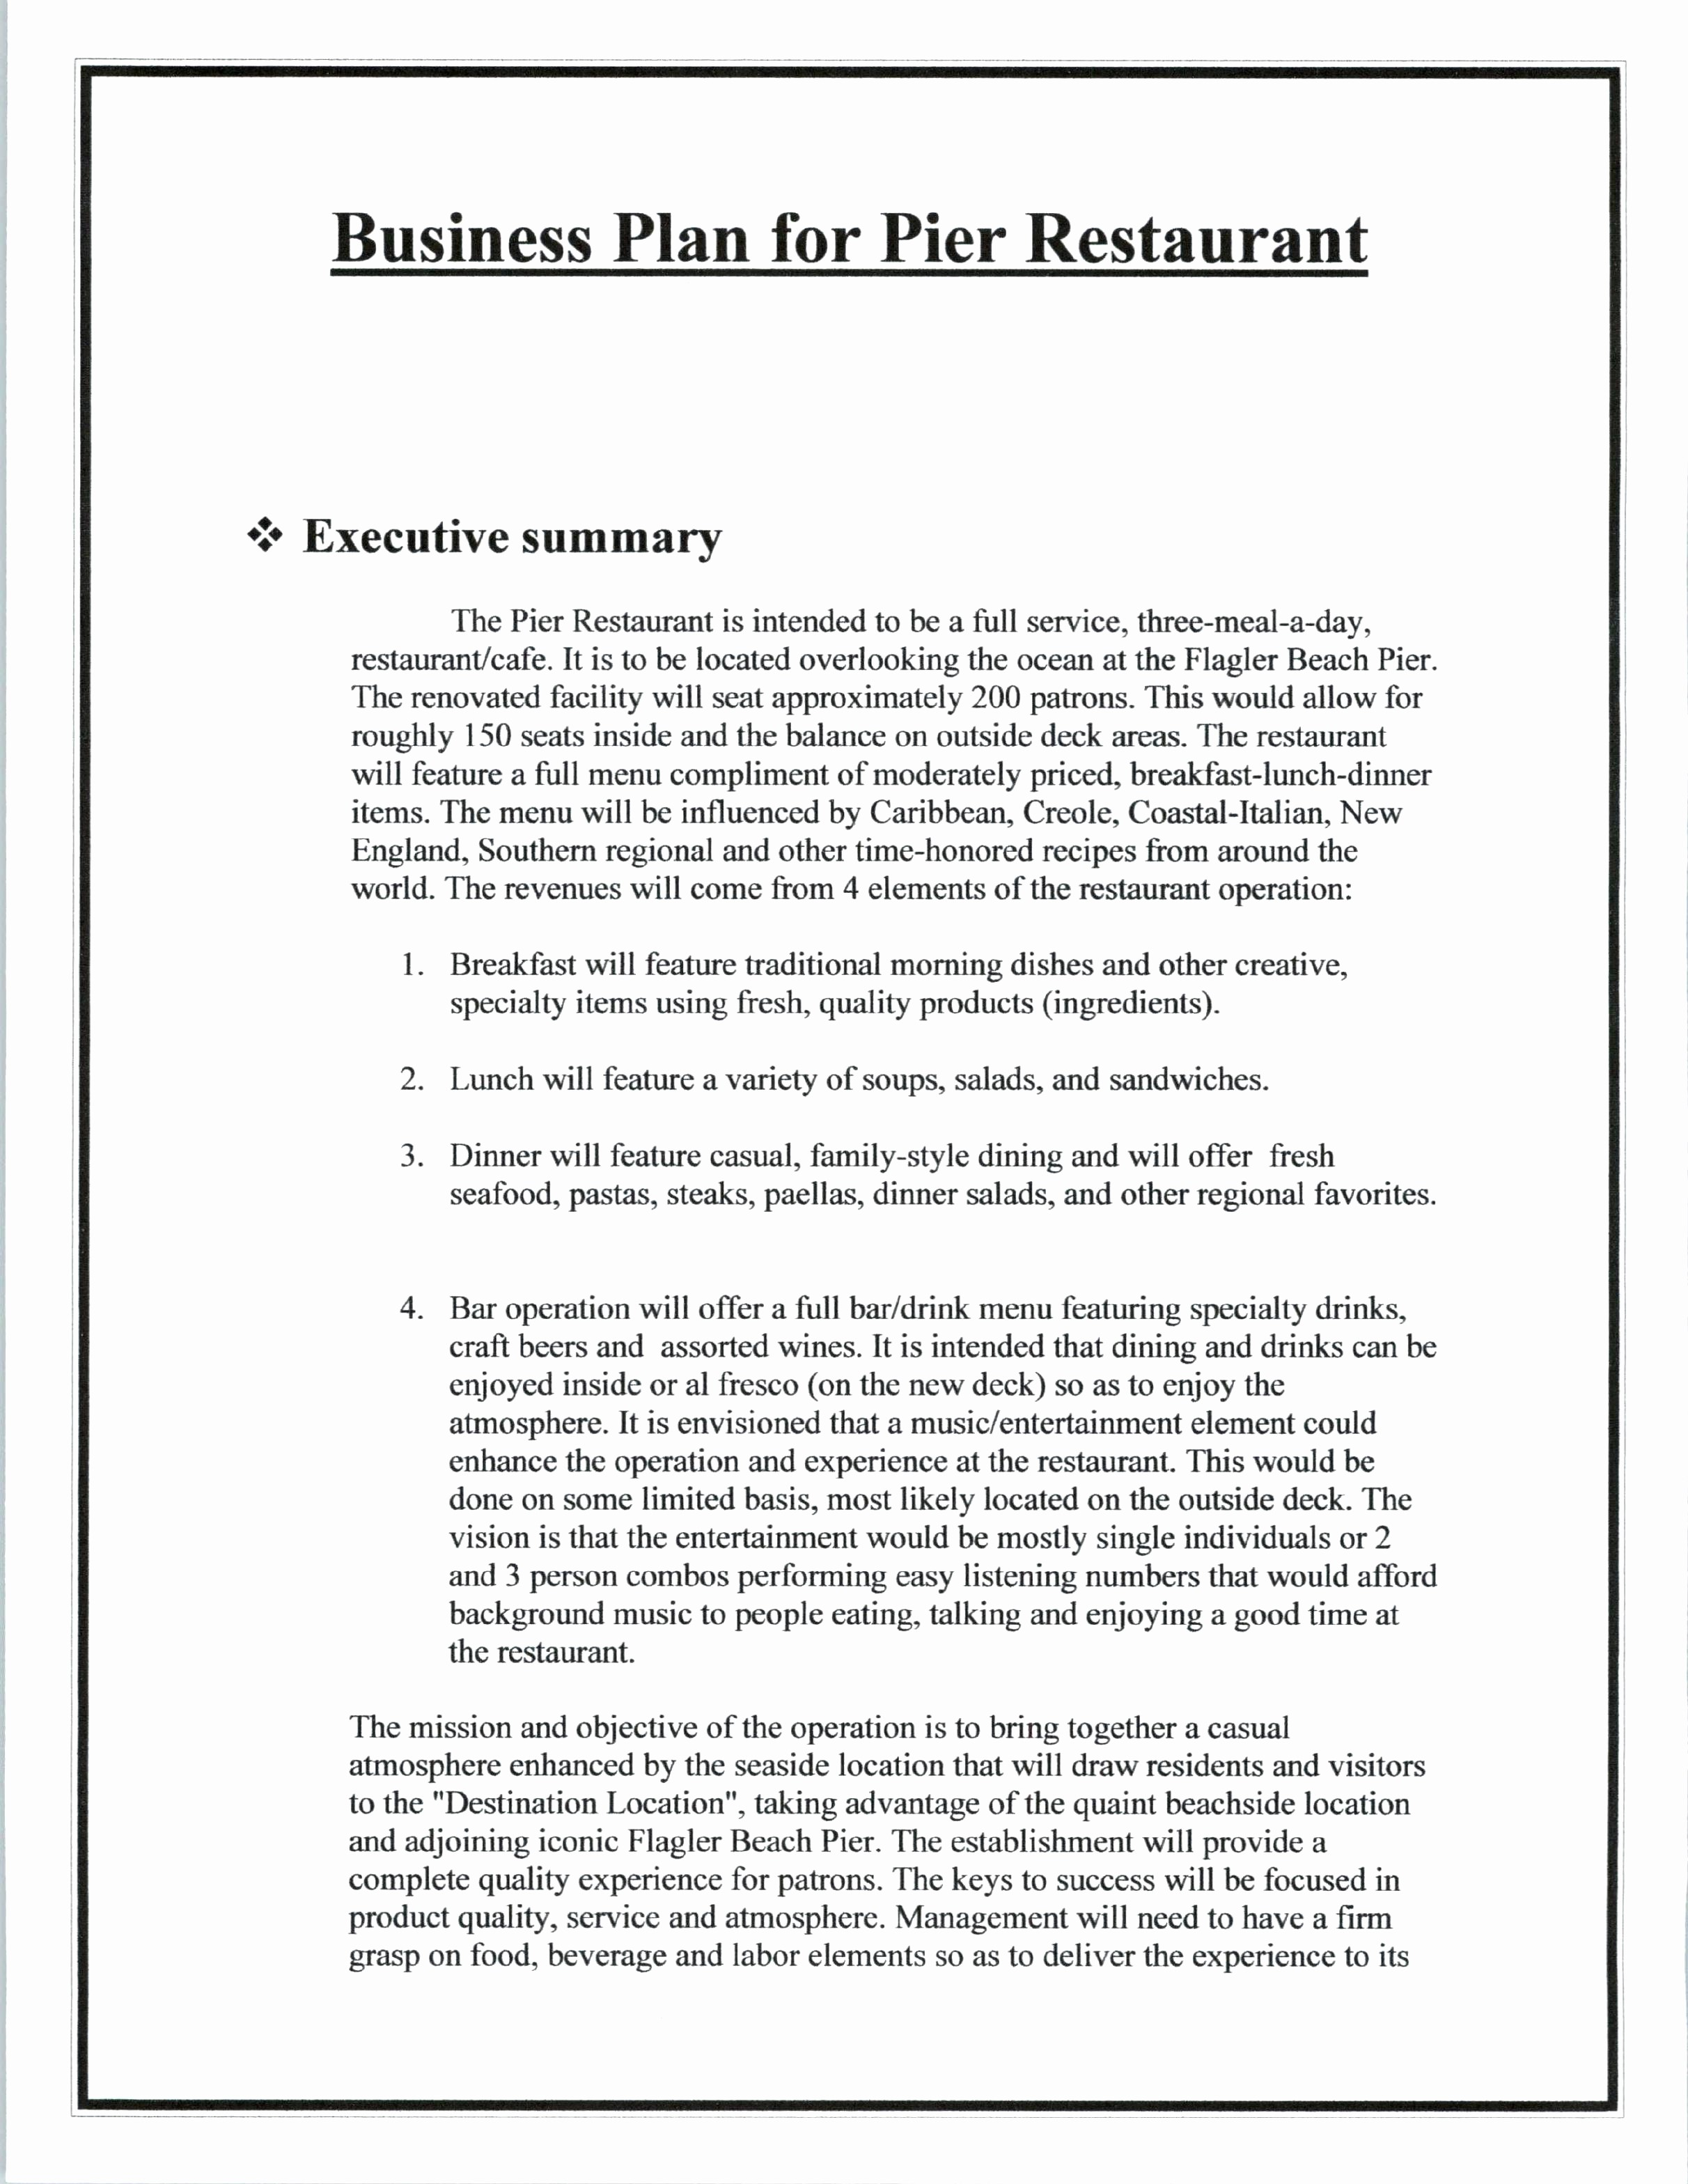 Basic Business Plan Template Free Unique Simple Business Plan Template